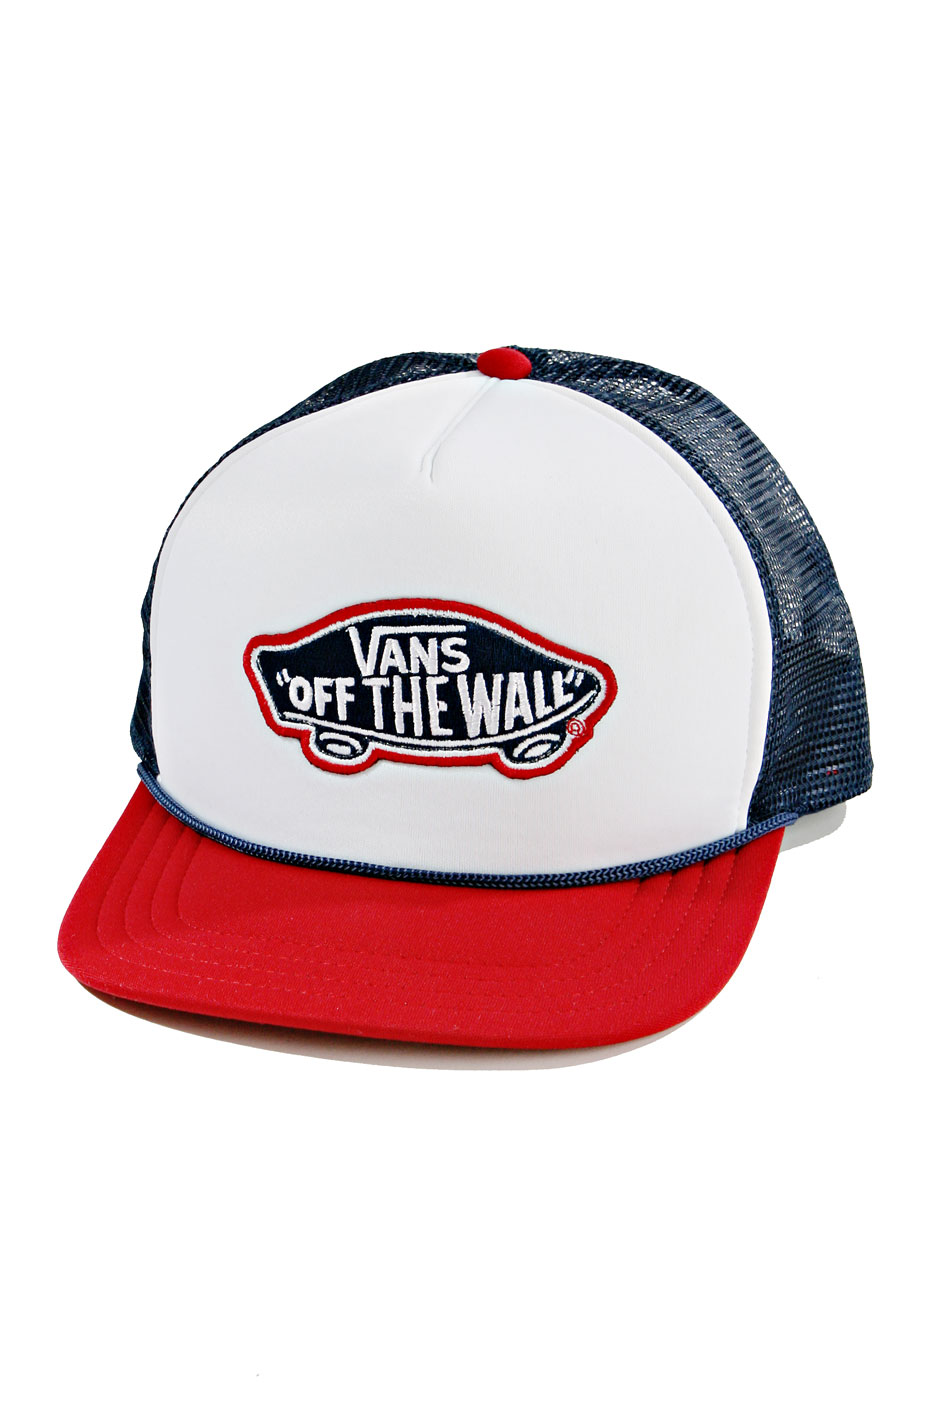 b38191fbfa7 Vans - Classic Patch Trucker Red Blue - Trucker Cap - Impericon.com  Worldwide